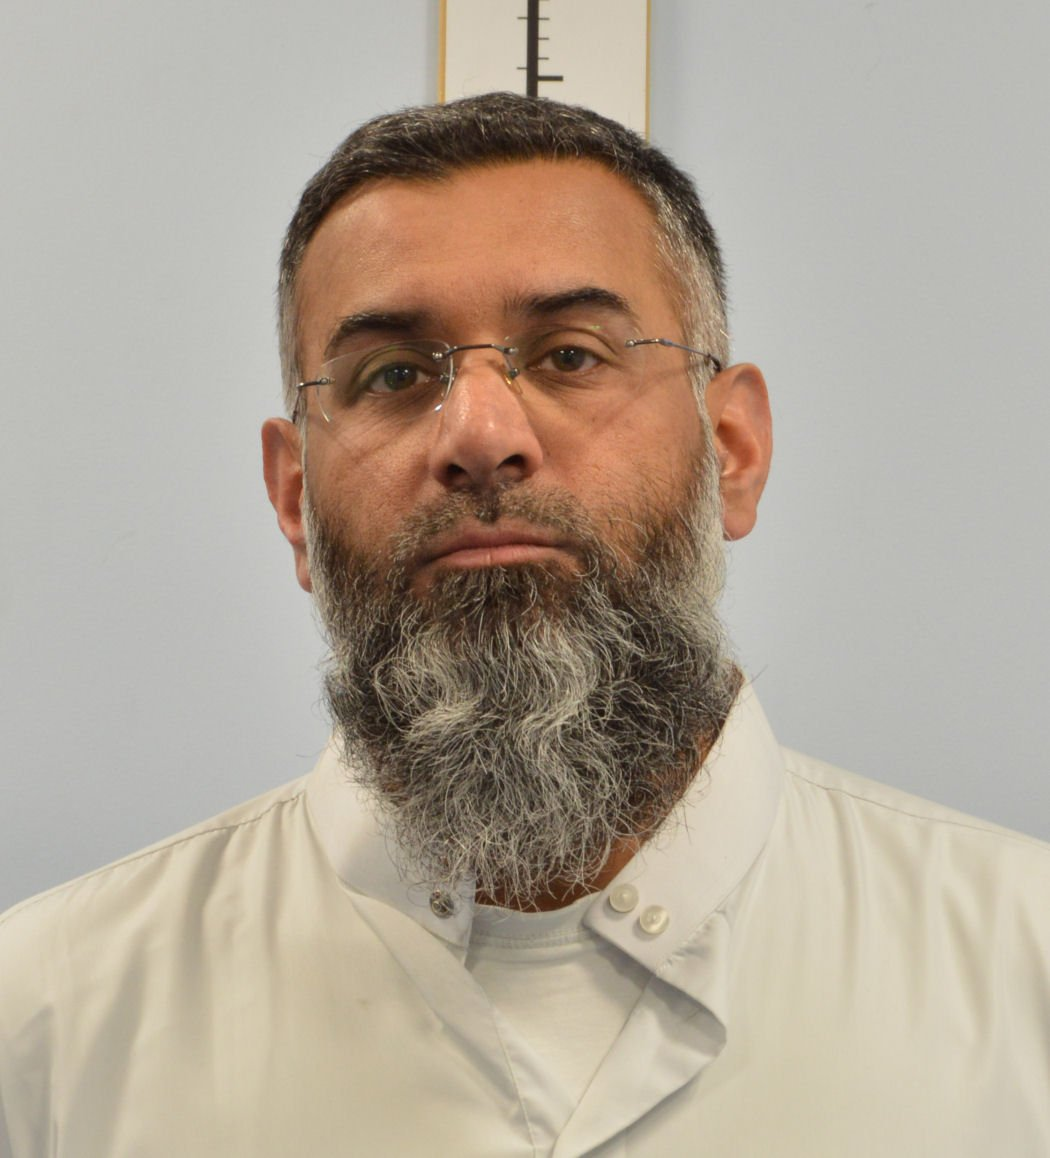 And here it is, the moment you've all been waiting for.....Anjem Choudary's mugshot https://t.co/iqJsRi03dX